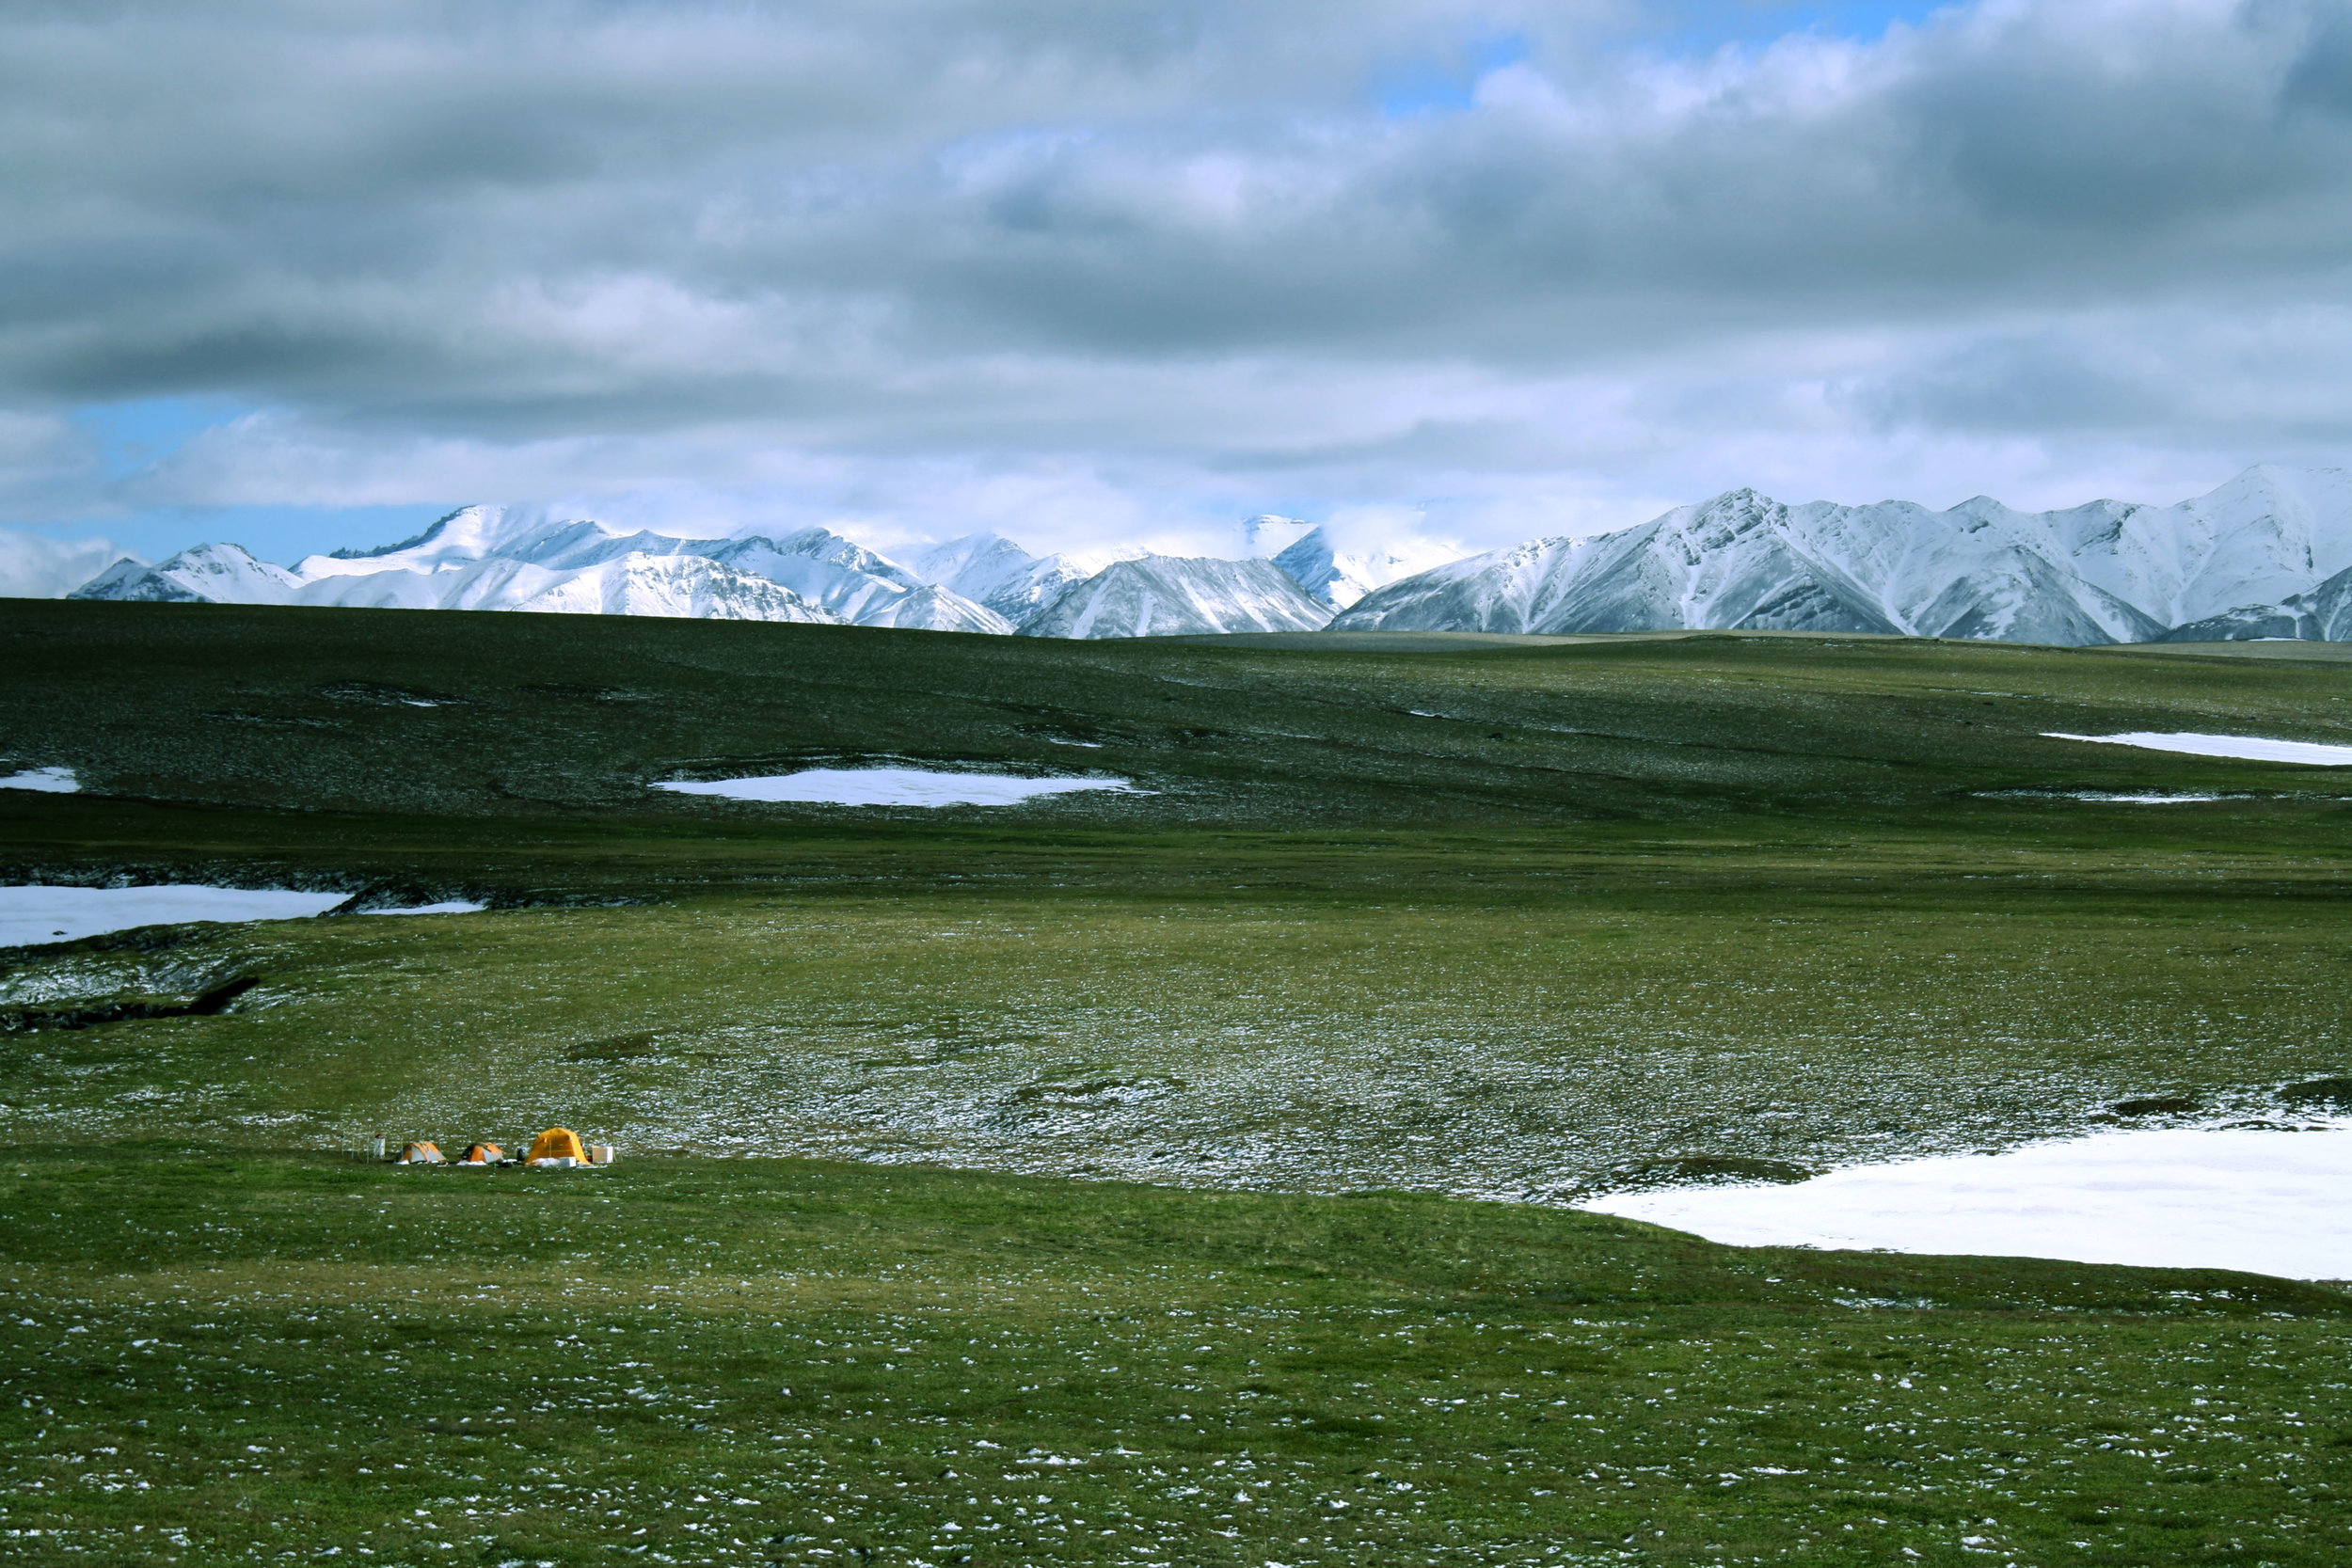 The research team's remote field camp above Iminus Lake in Arctic Alaska. Photo: Mark Urban